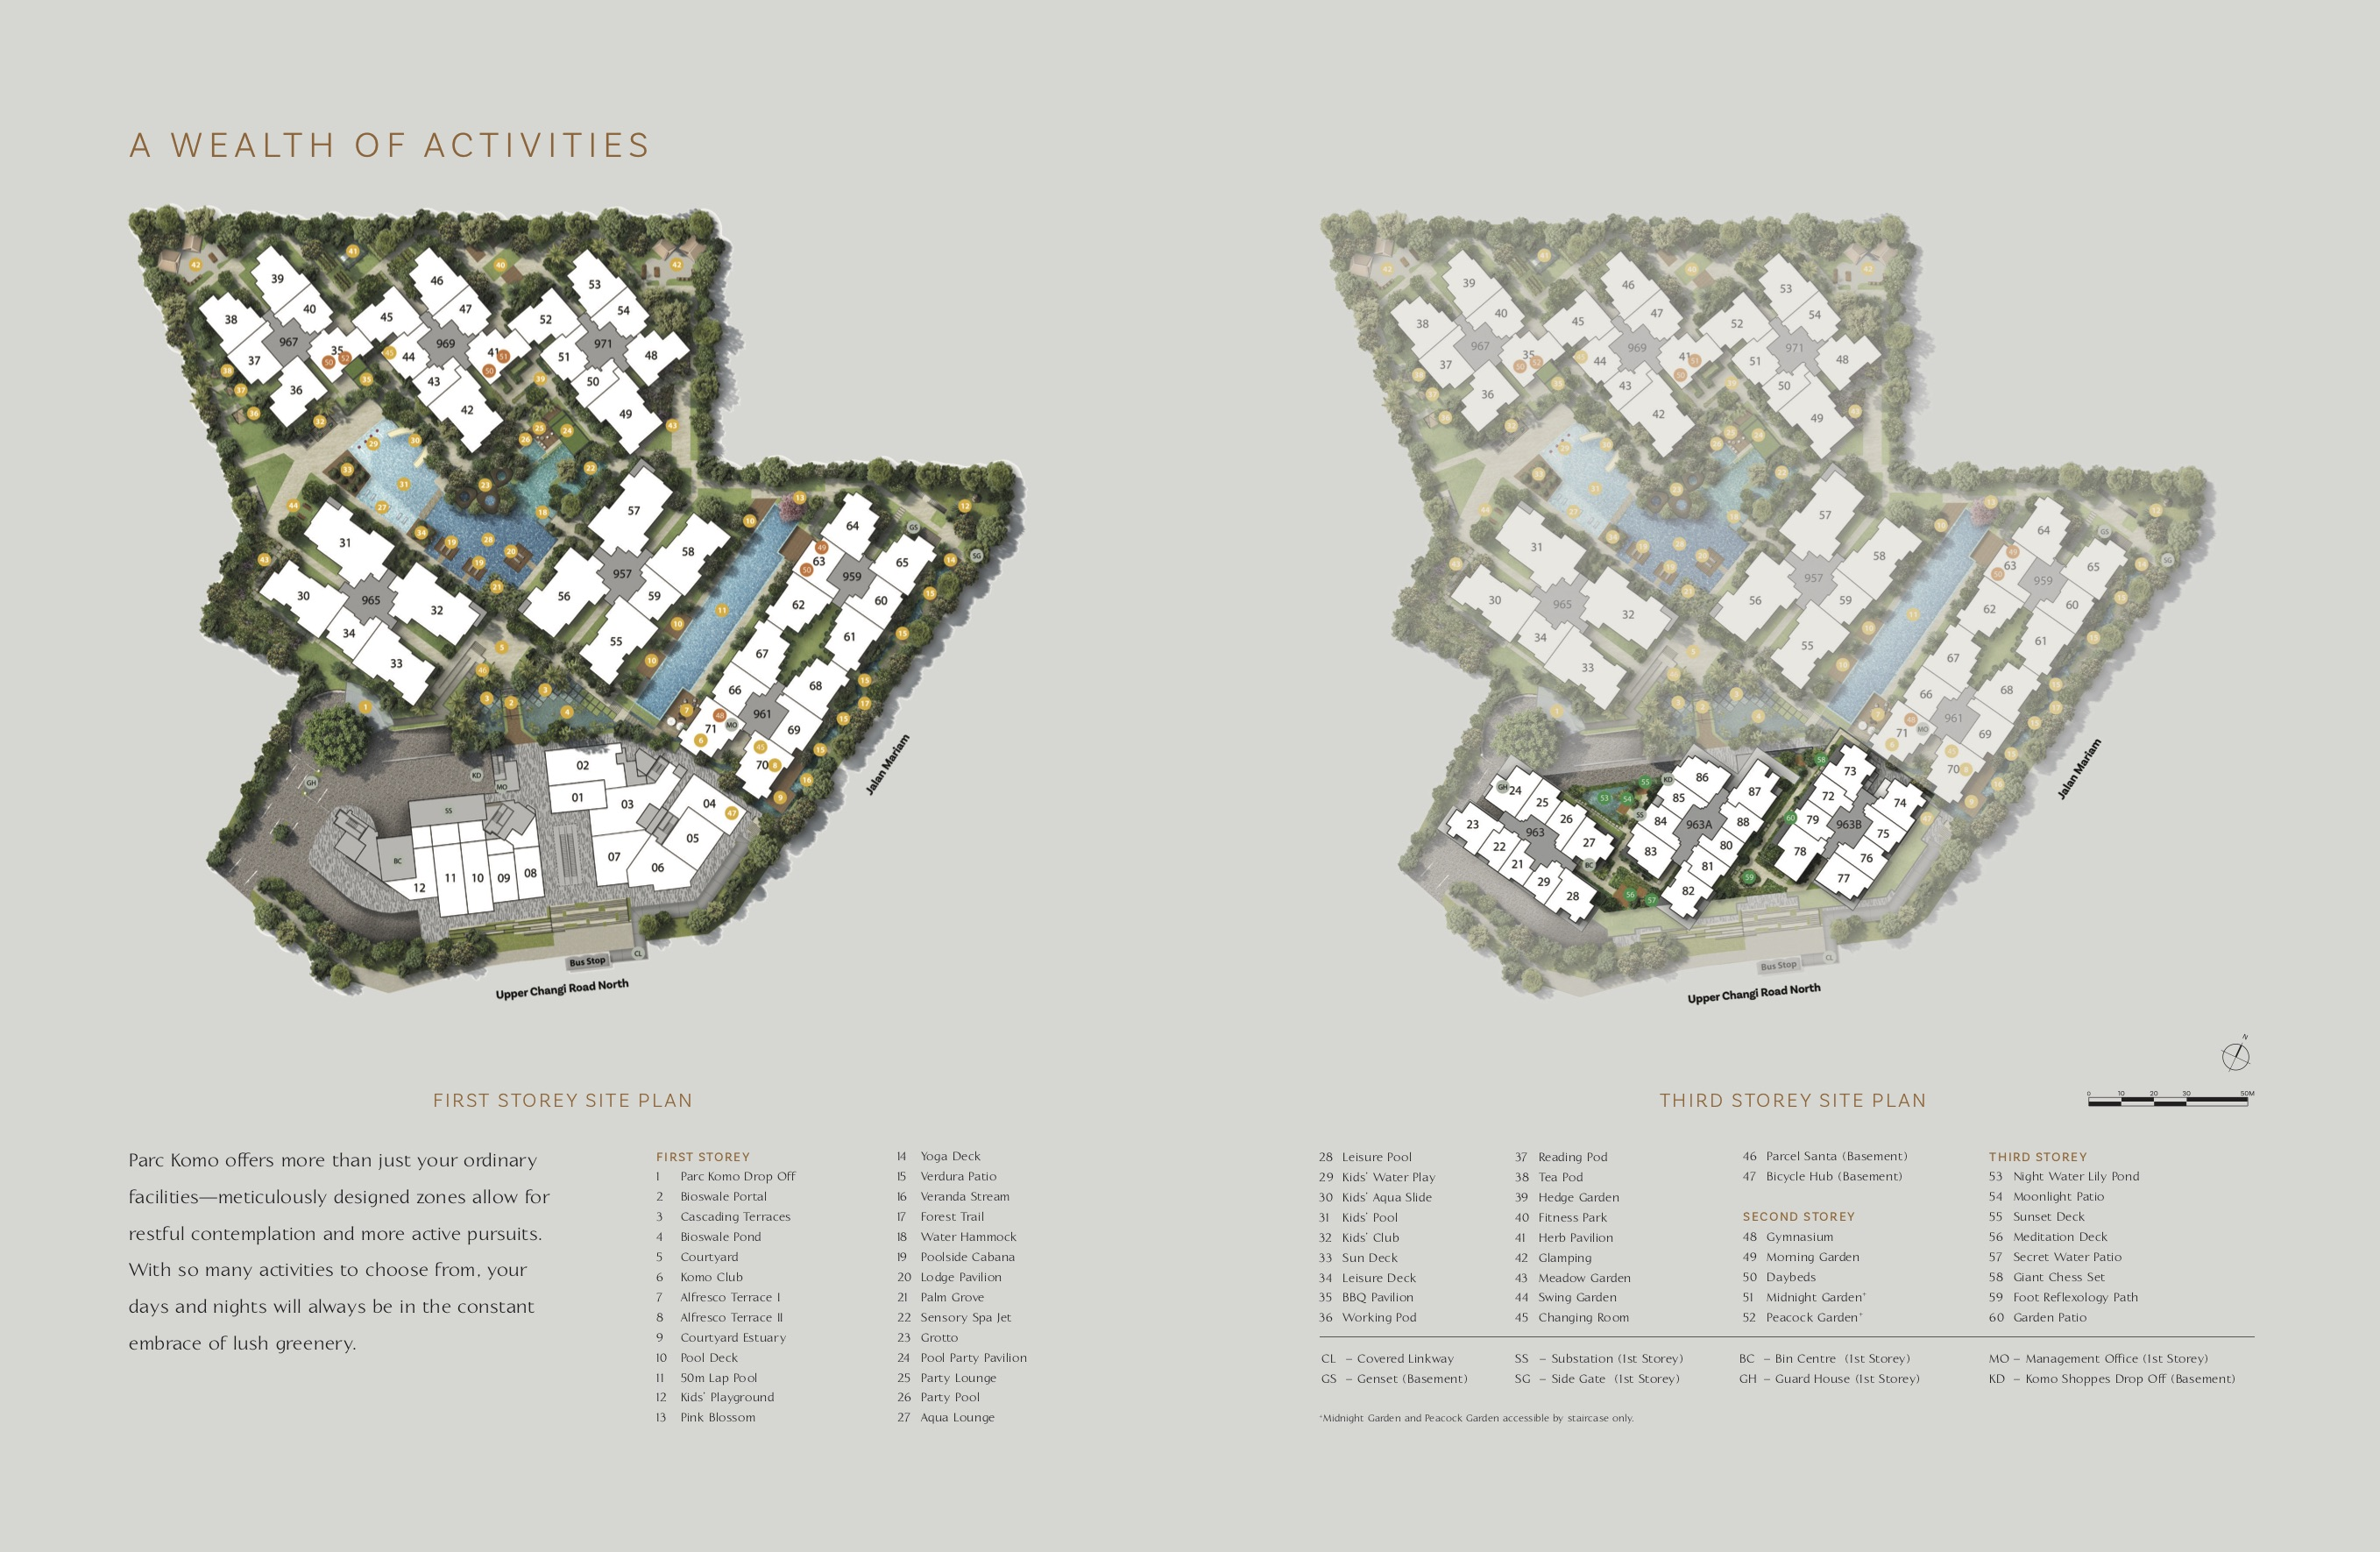 CEL_BROCHURE_SITE PLAN.jpg